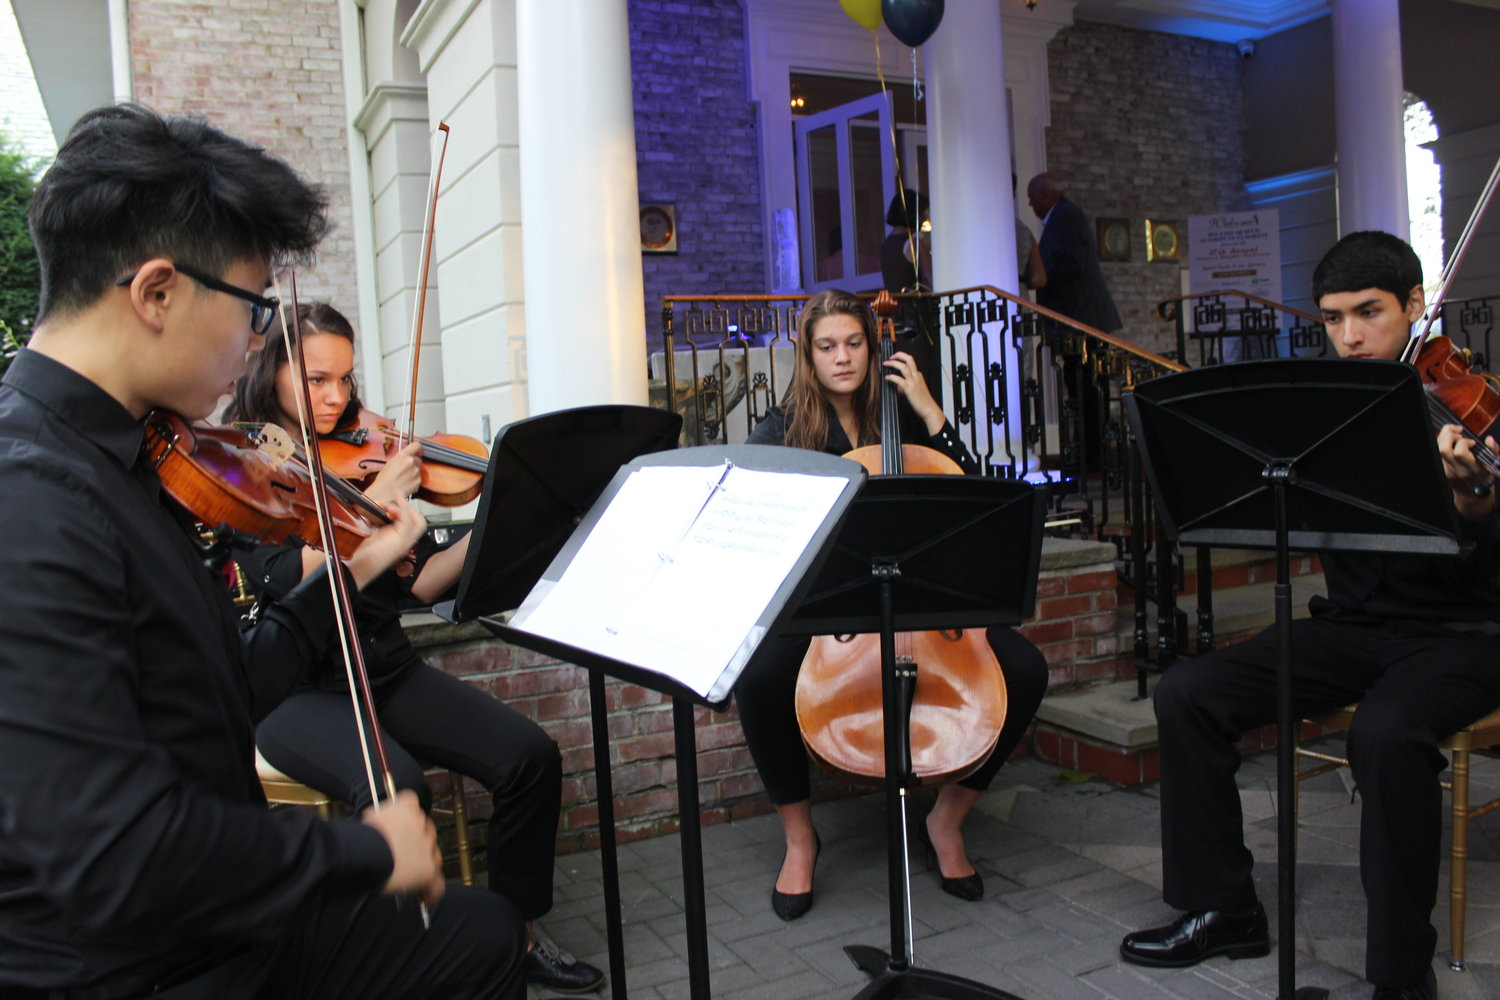 Outside the Carltun, guests were serenaded by a string quartet comprising, from left, Lucas Mun, Yana Vilchynskaya, Vanessa Froehlich and Joaquin Caceres, all members of the East Meadow High School Chamber Orchestra.